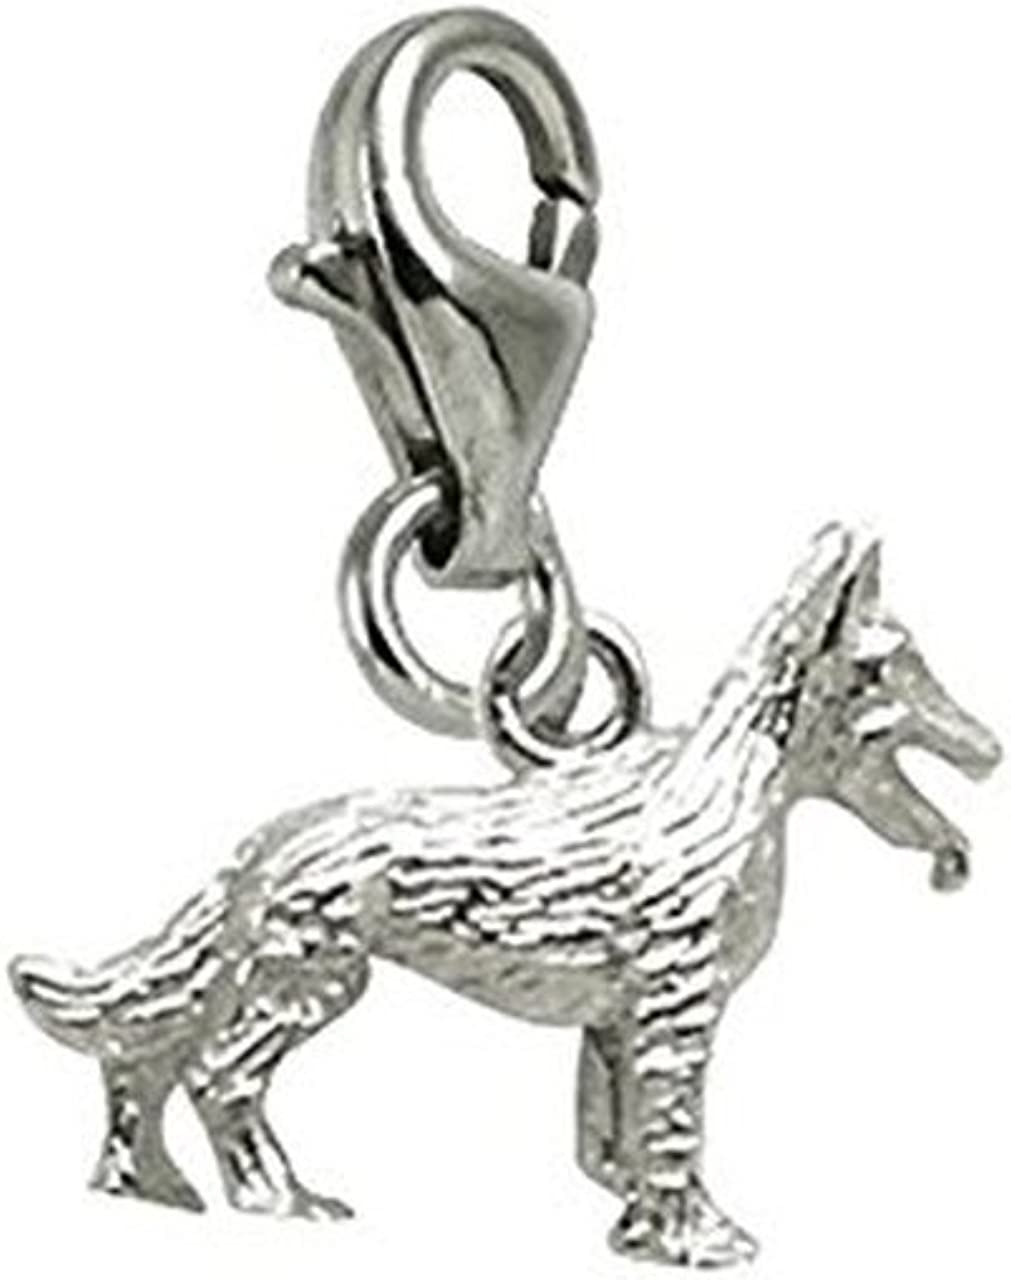 German Shepherd Charm with Lobster Claw Clasp, Charms for Bracelets and Necklaces